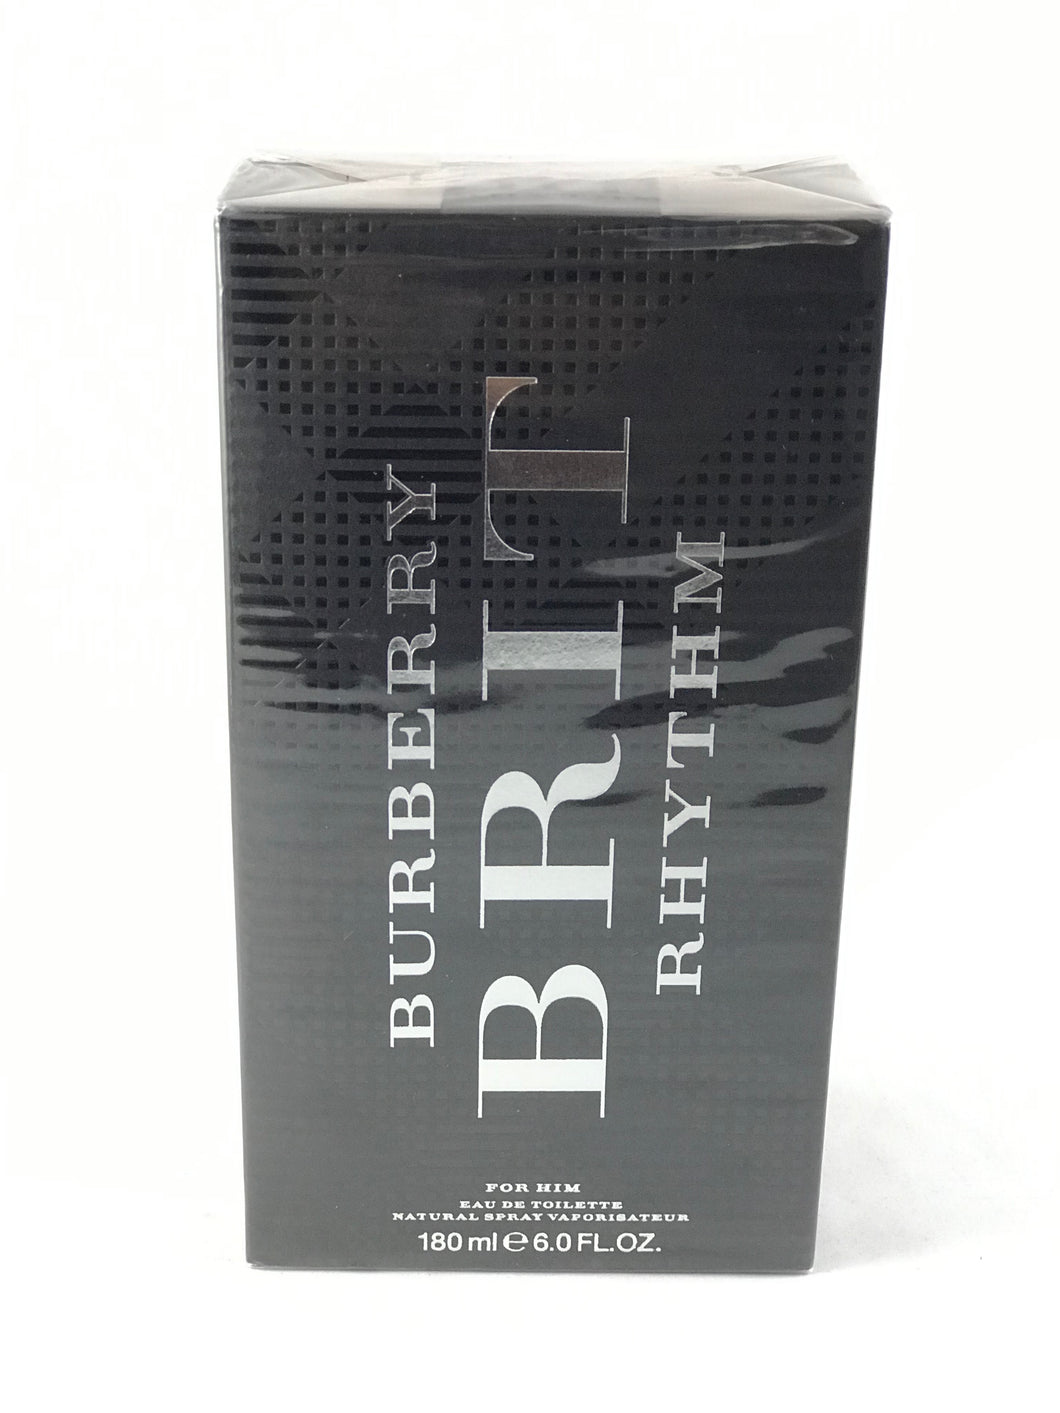 Burberry BRIT Rhythm For Him Eau de Toilette 6.0oz 180ml